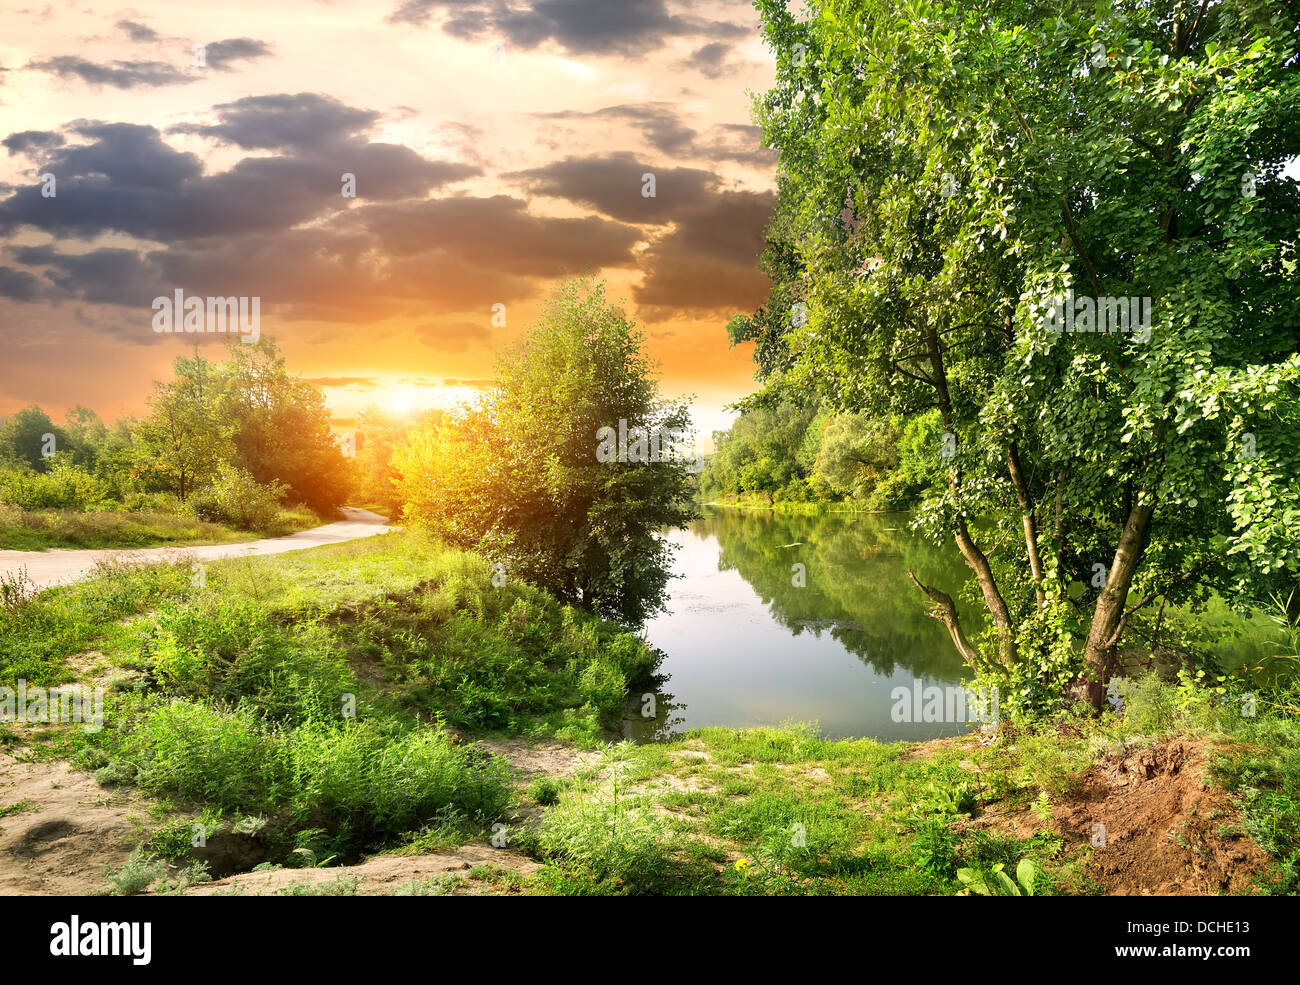 Road along the river Severskiy Donets in Ukraine - Stock Image